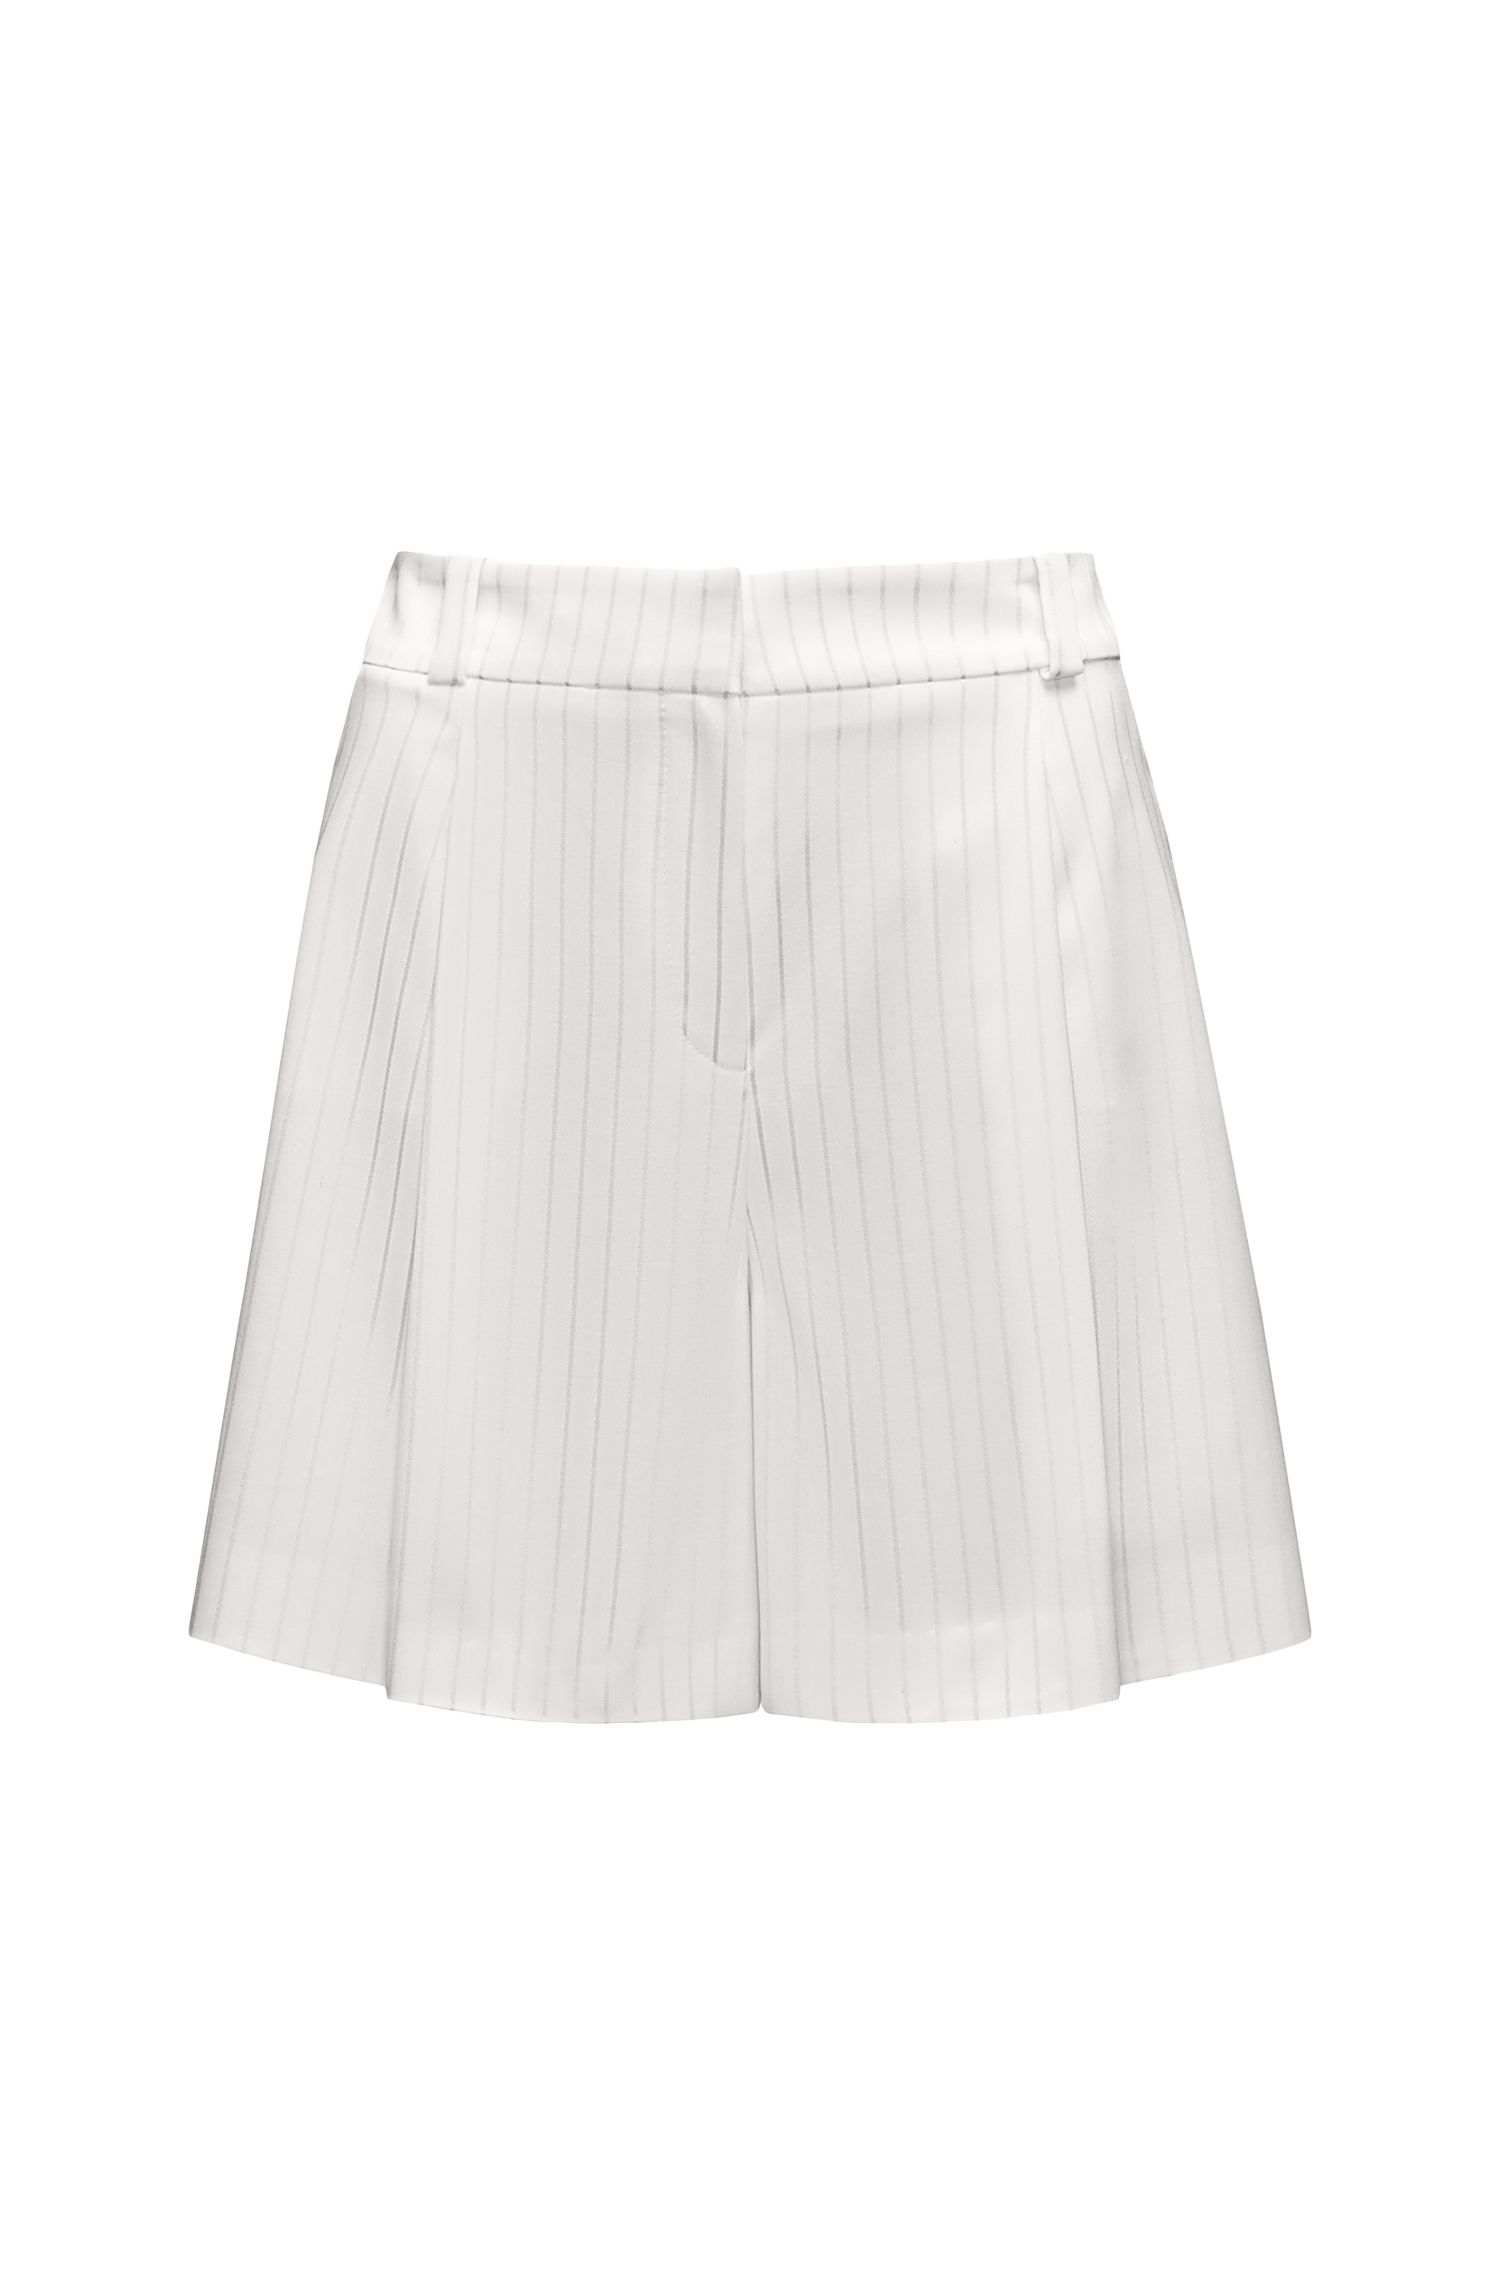 High-rise shorts with metallic stripe